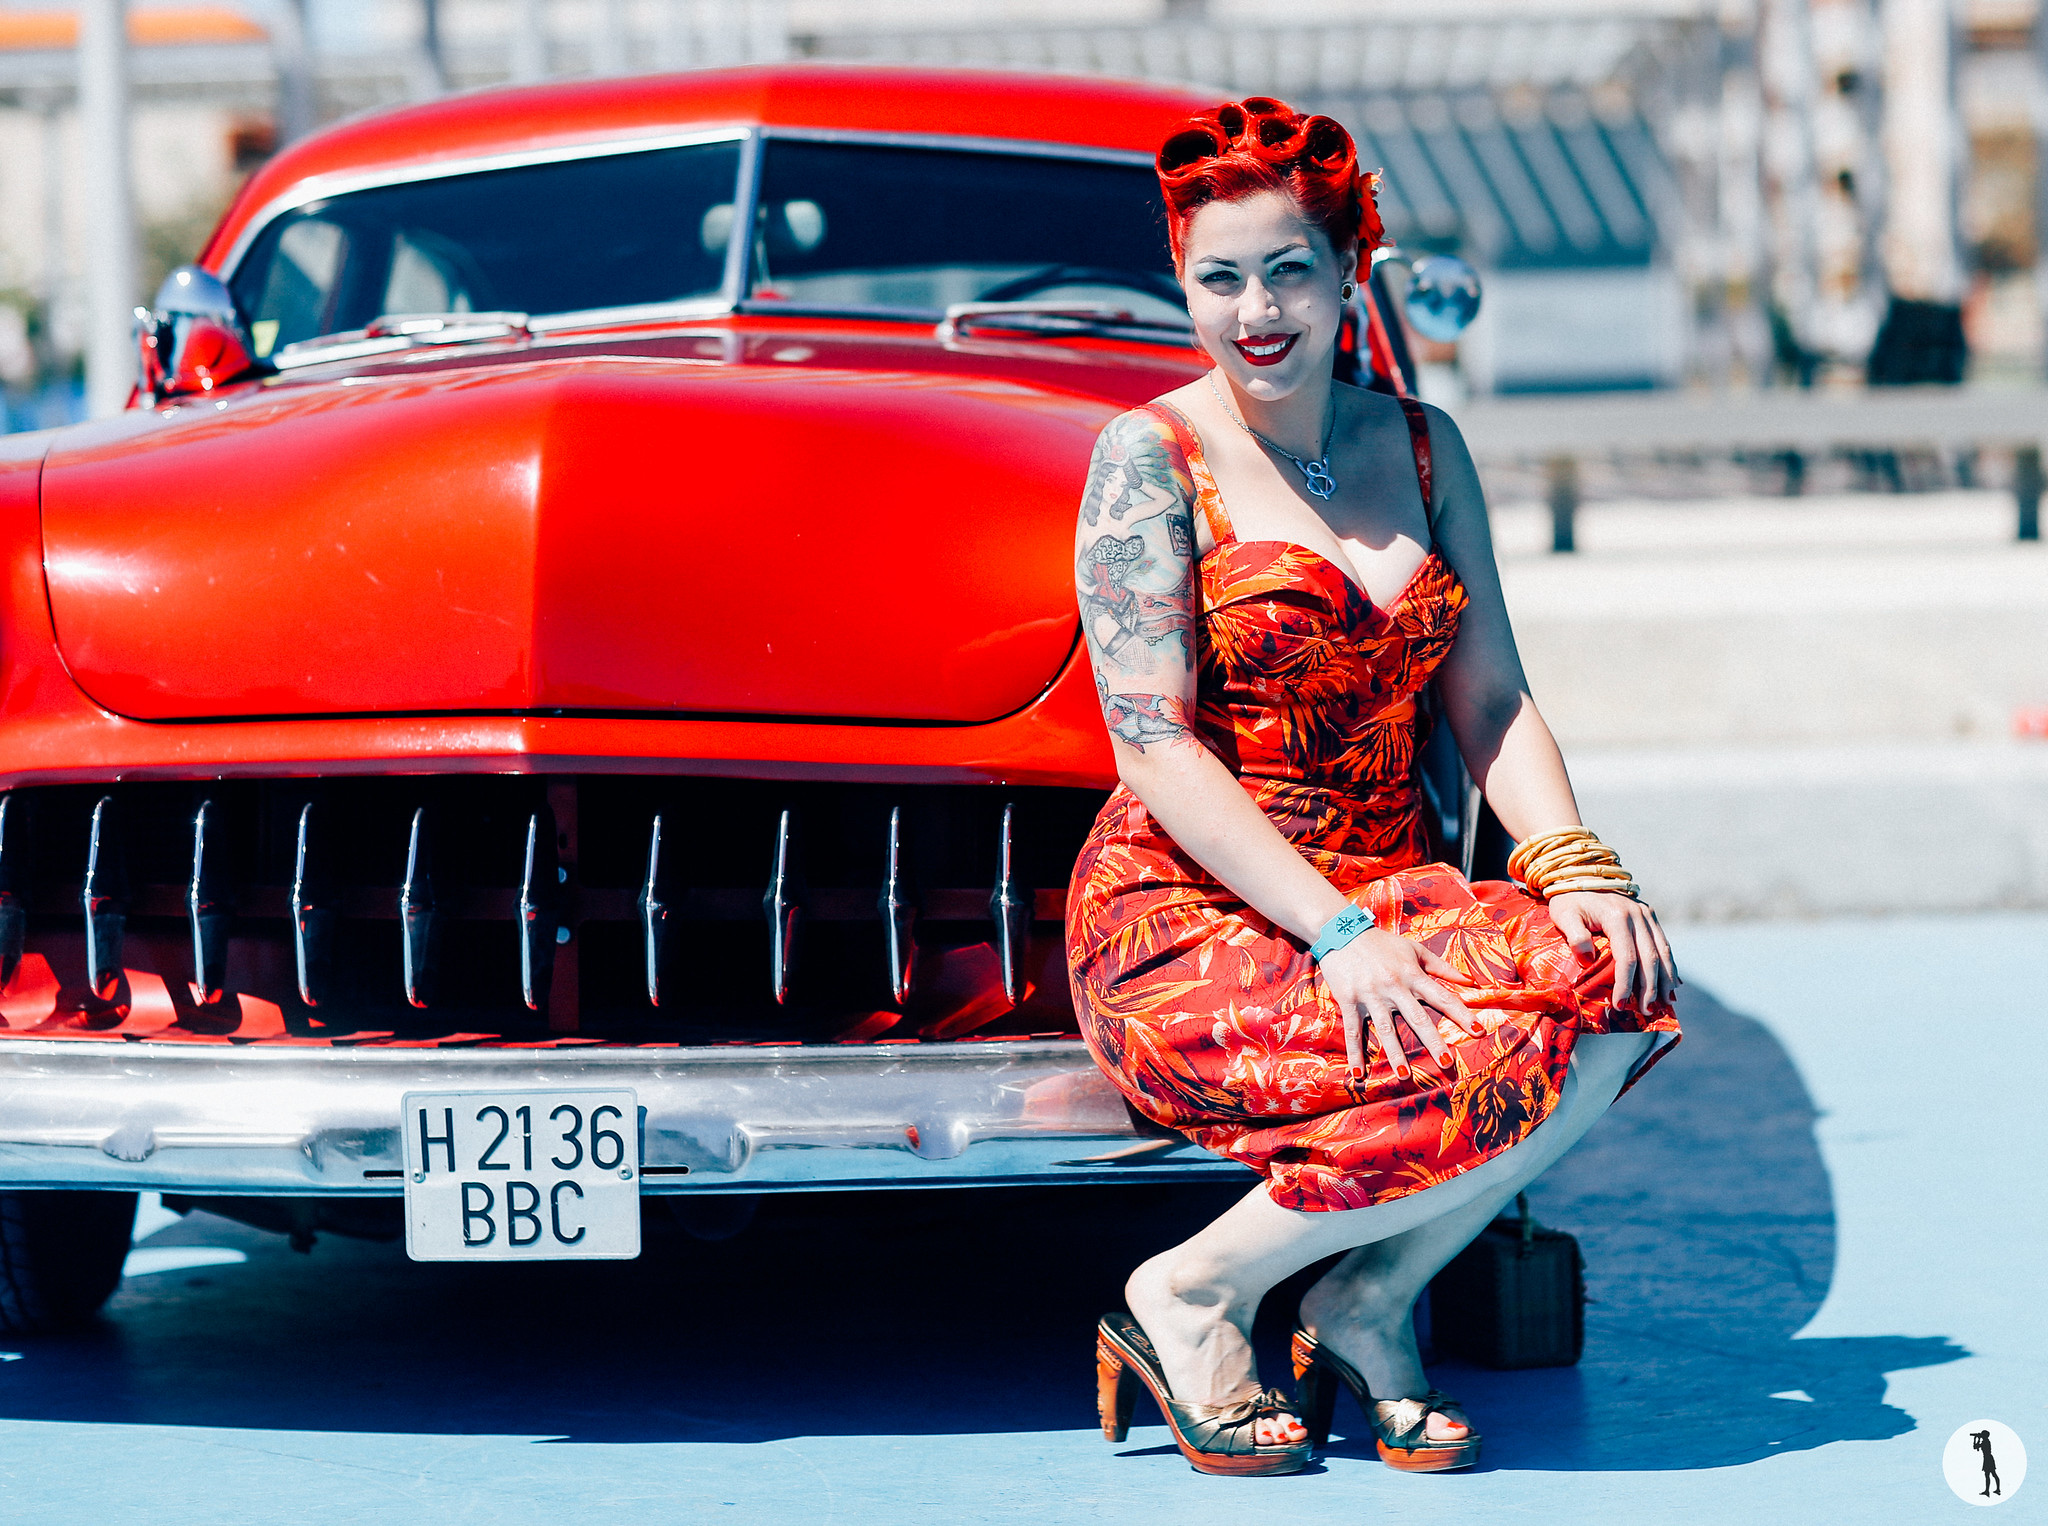 Riverside Car Show 2016, Calafell, Spain. Pin-up. Rockabilly.